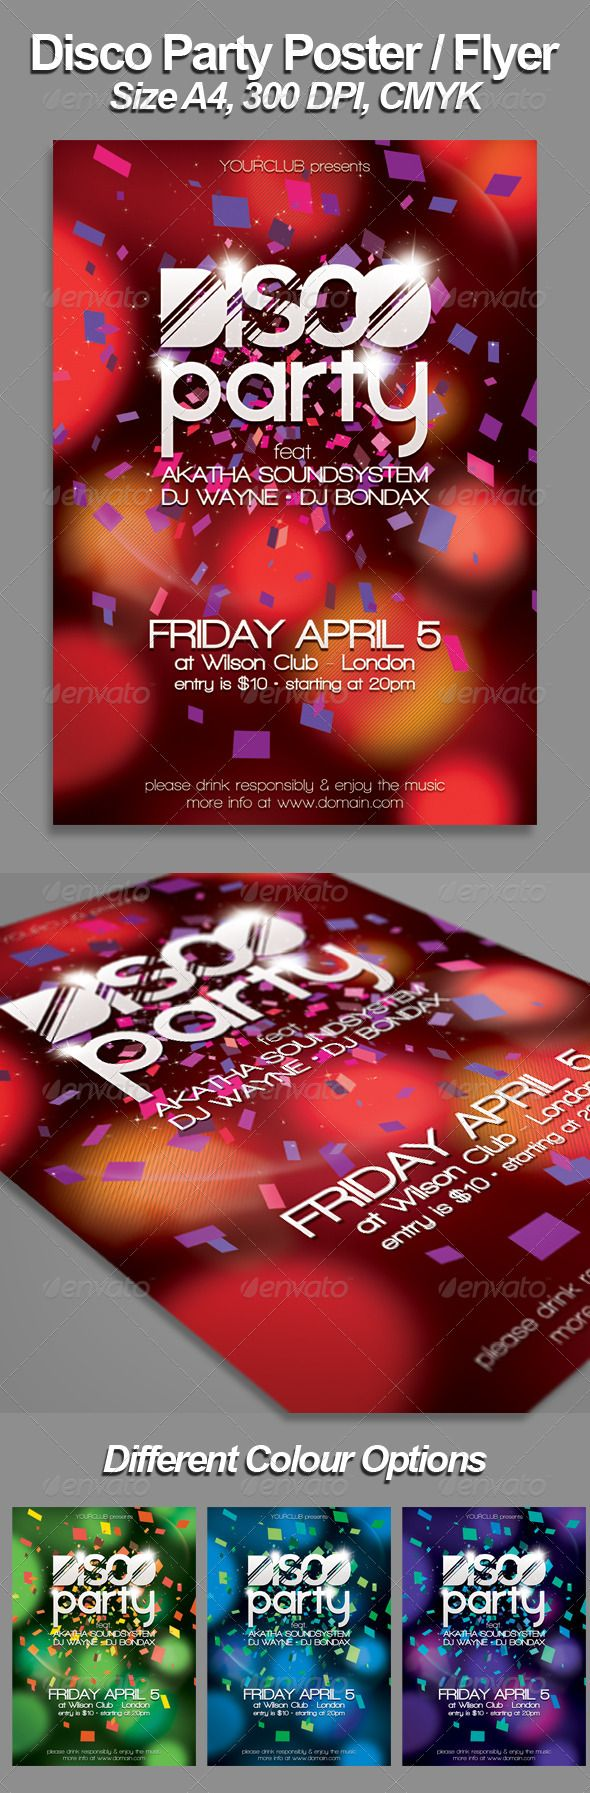 A Disco FlyerPoster Template  Template Party Poster And Print